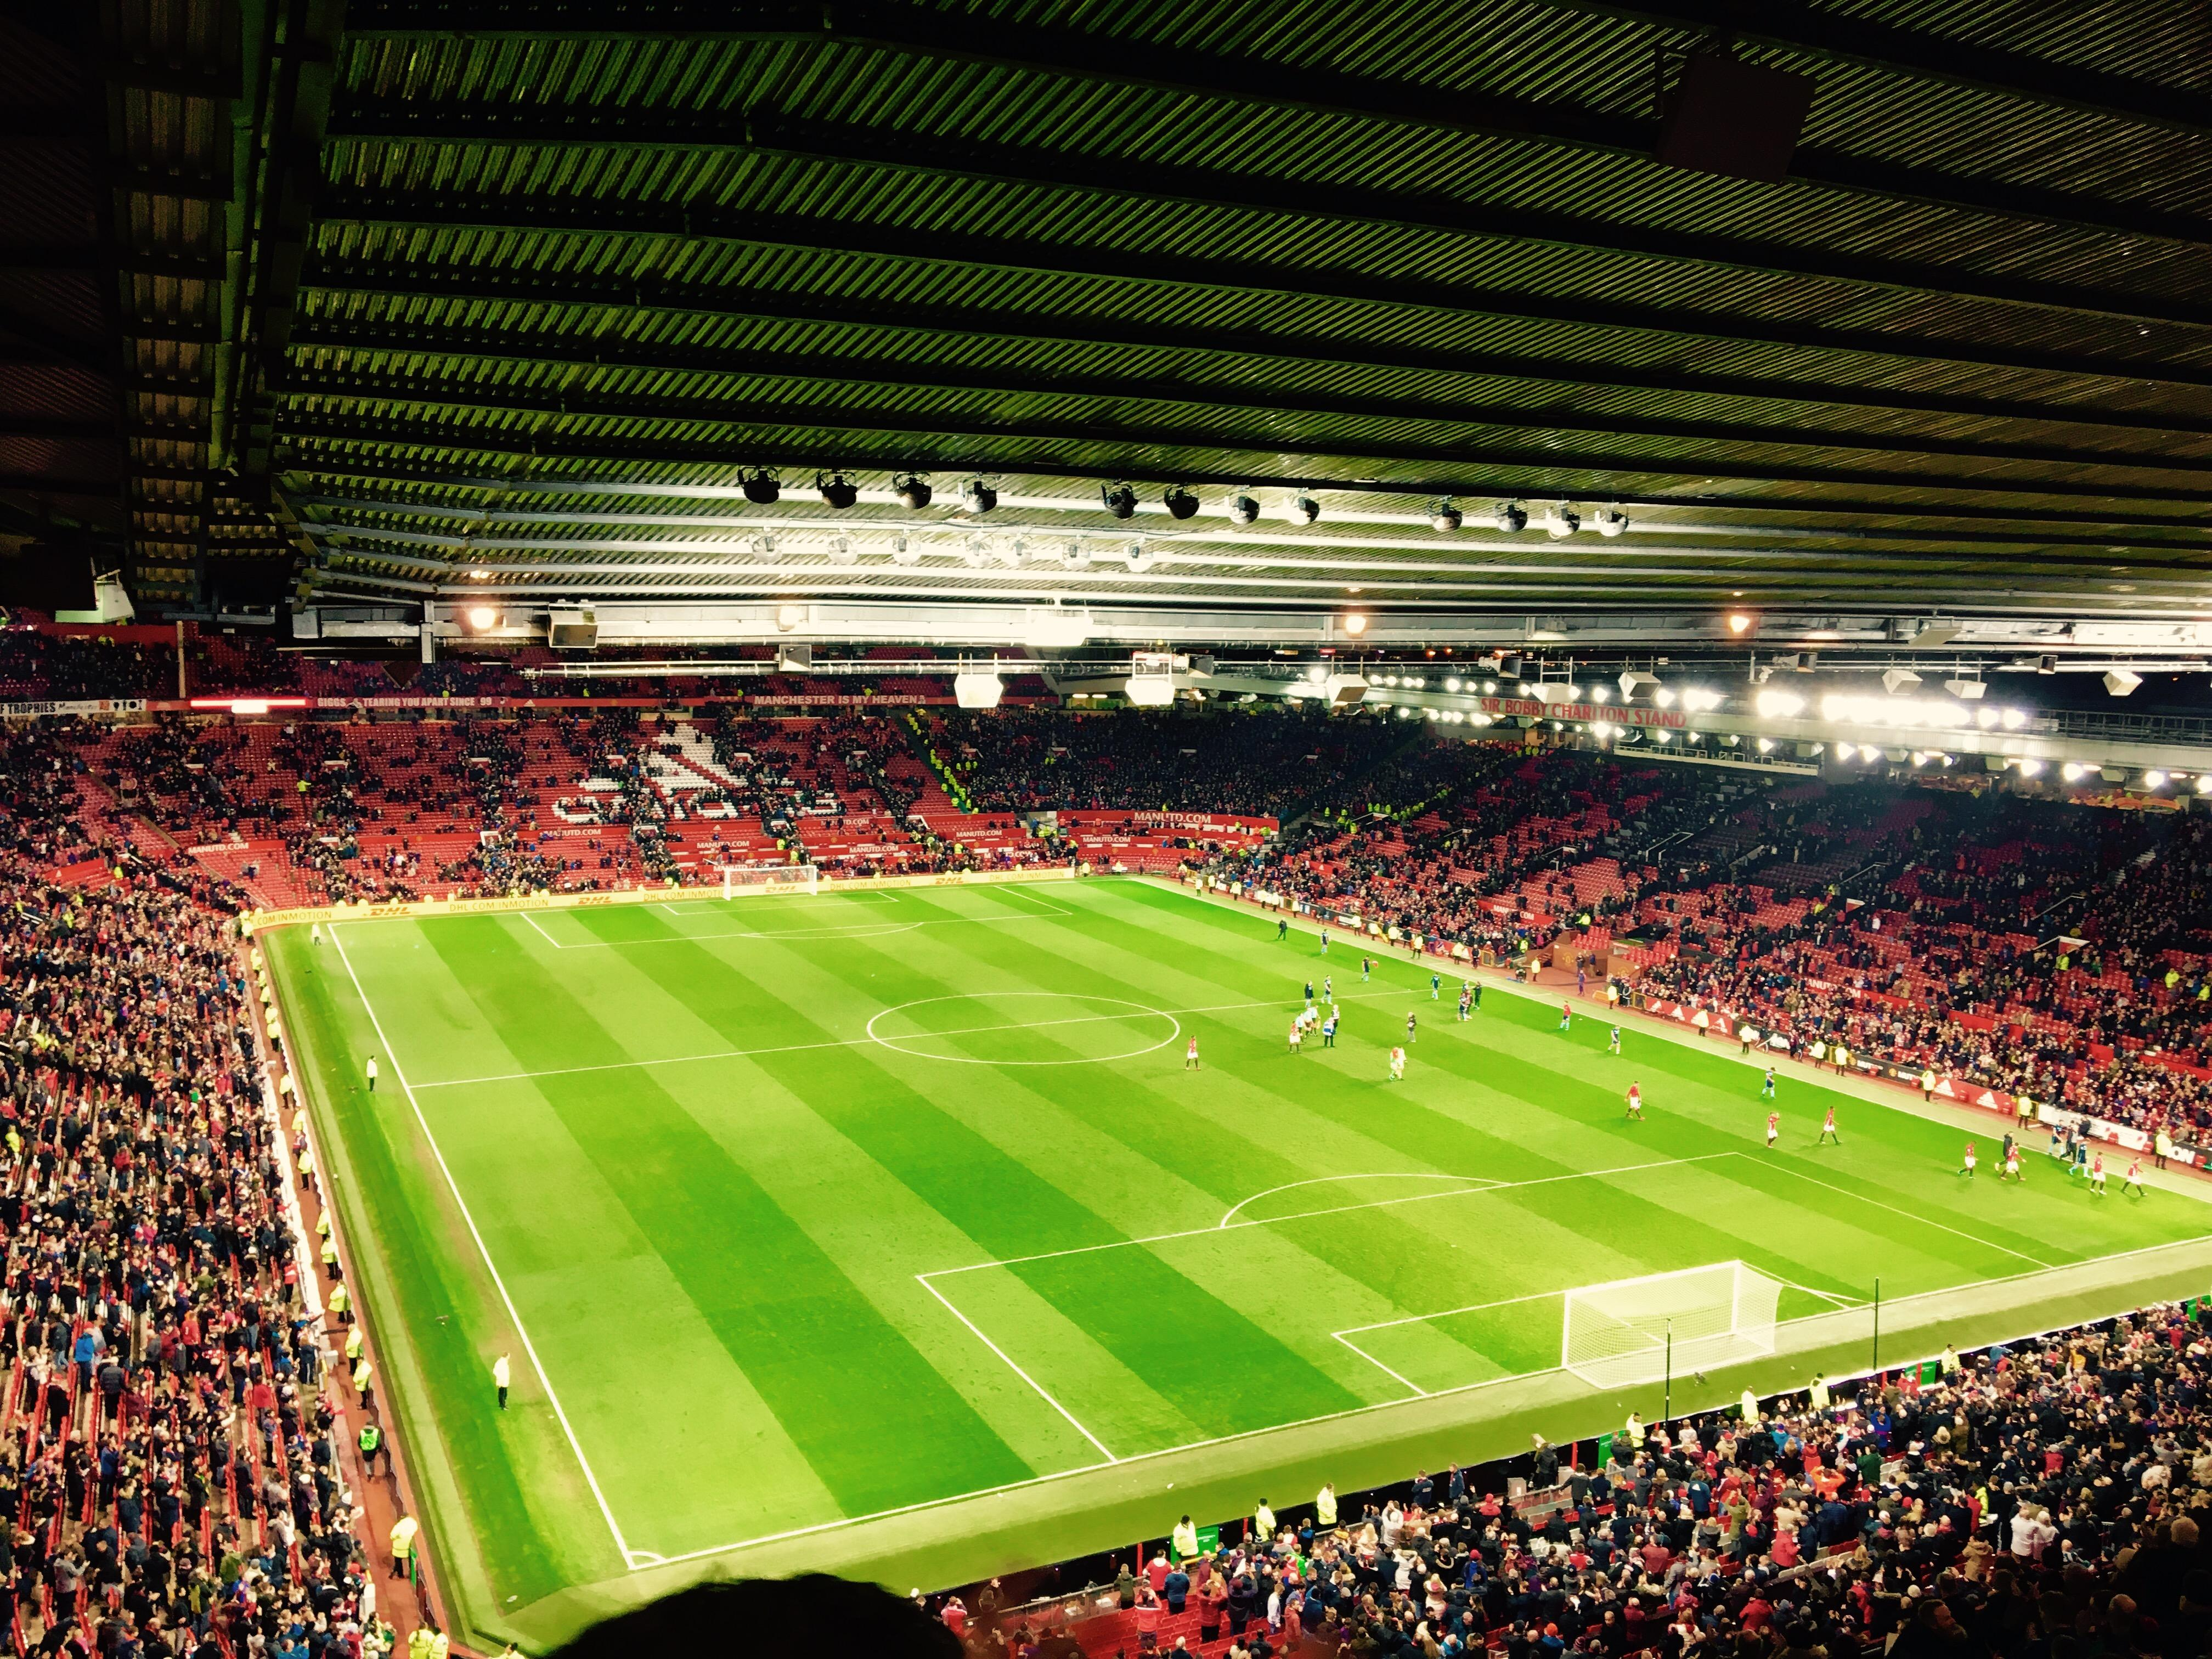 Old Trafford Section 3434 Row 4 Seat 20